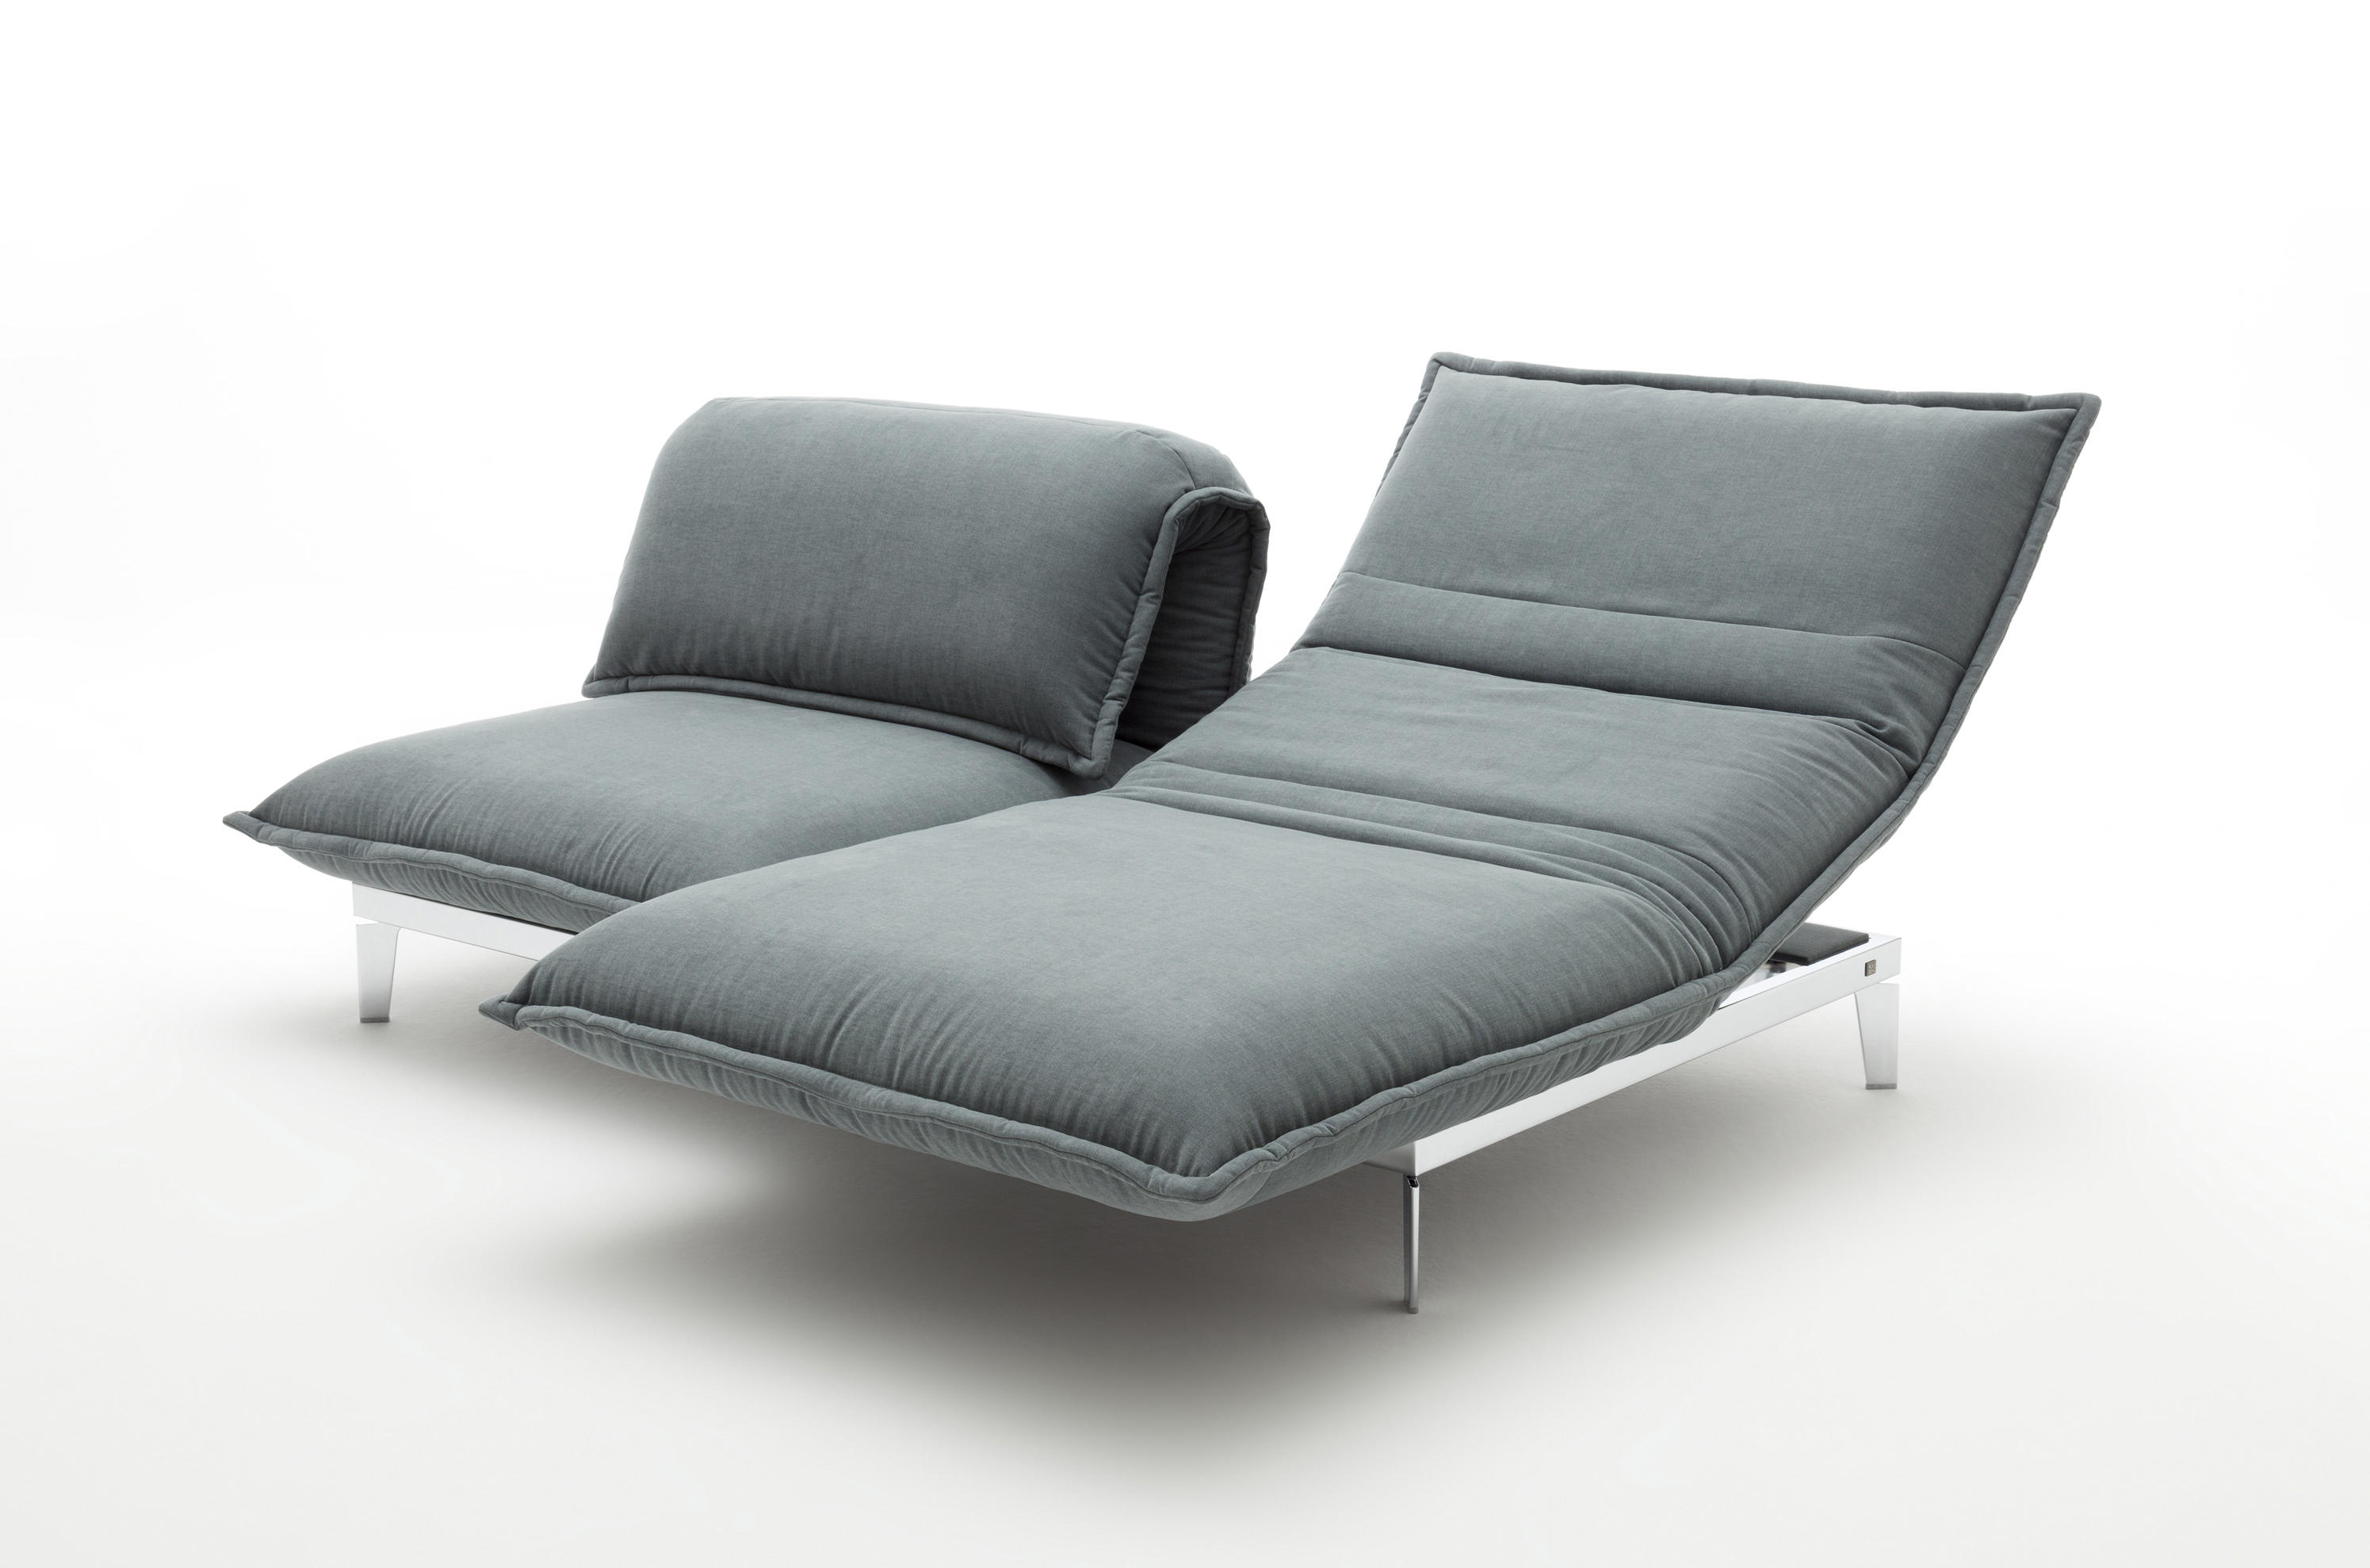 Rolf benz nova relaxsofas von rolf benz architonic for Rolf benz nagold